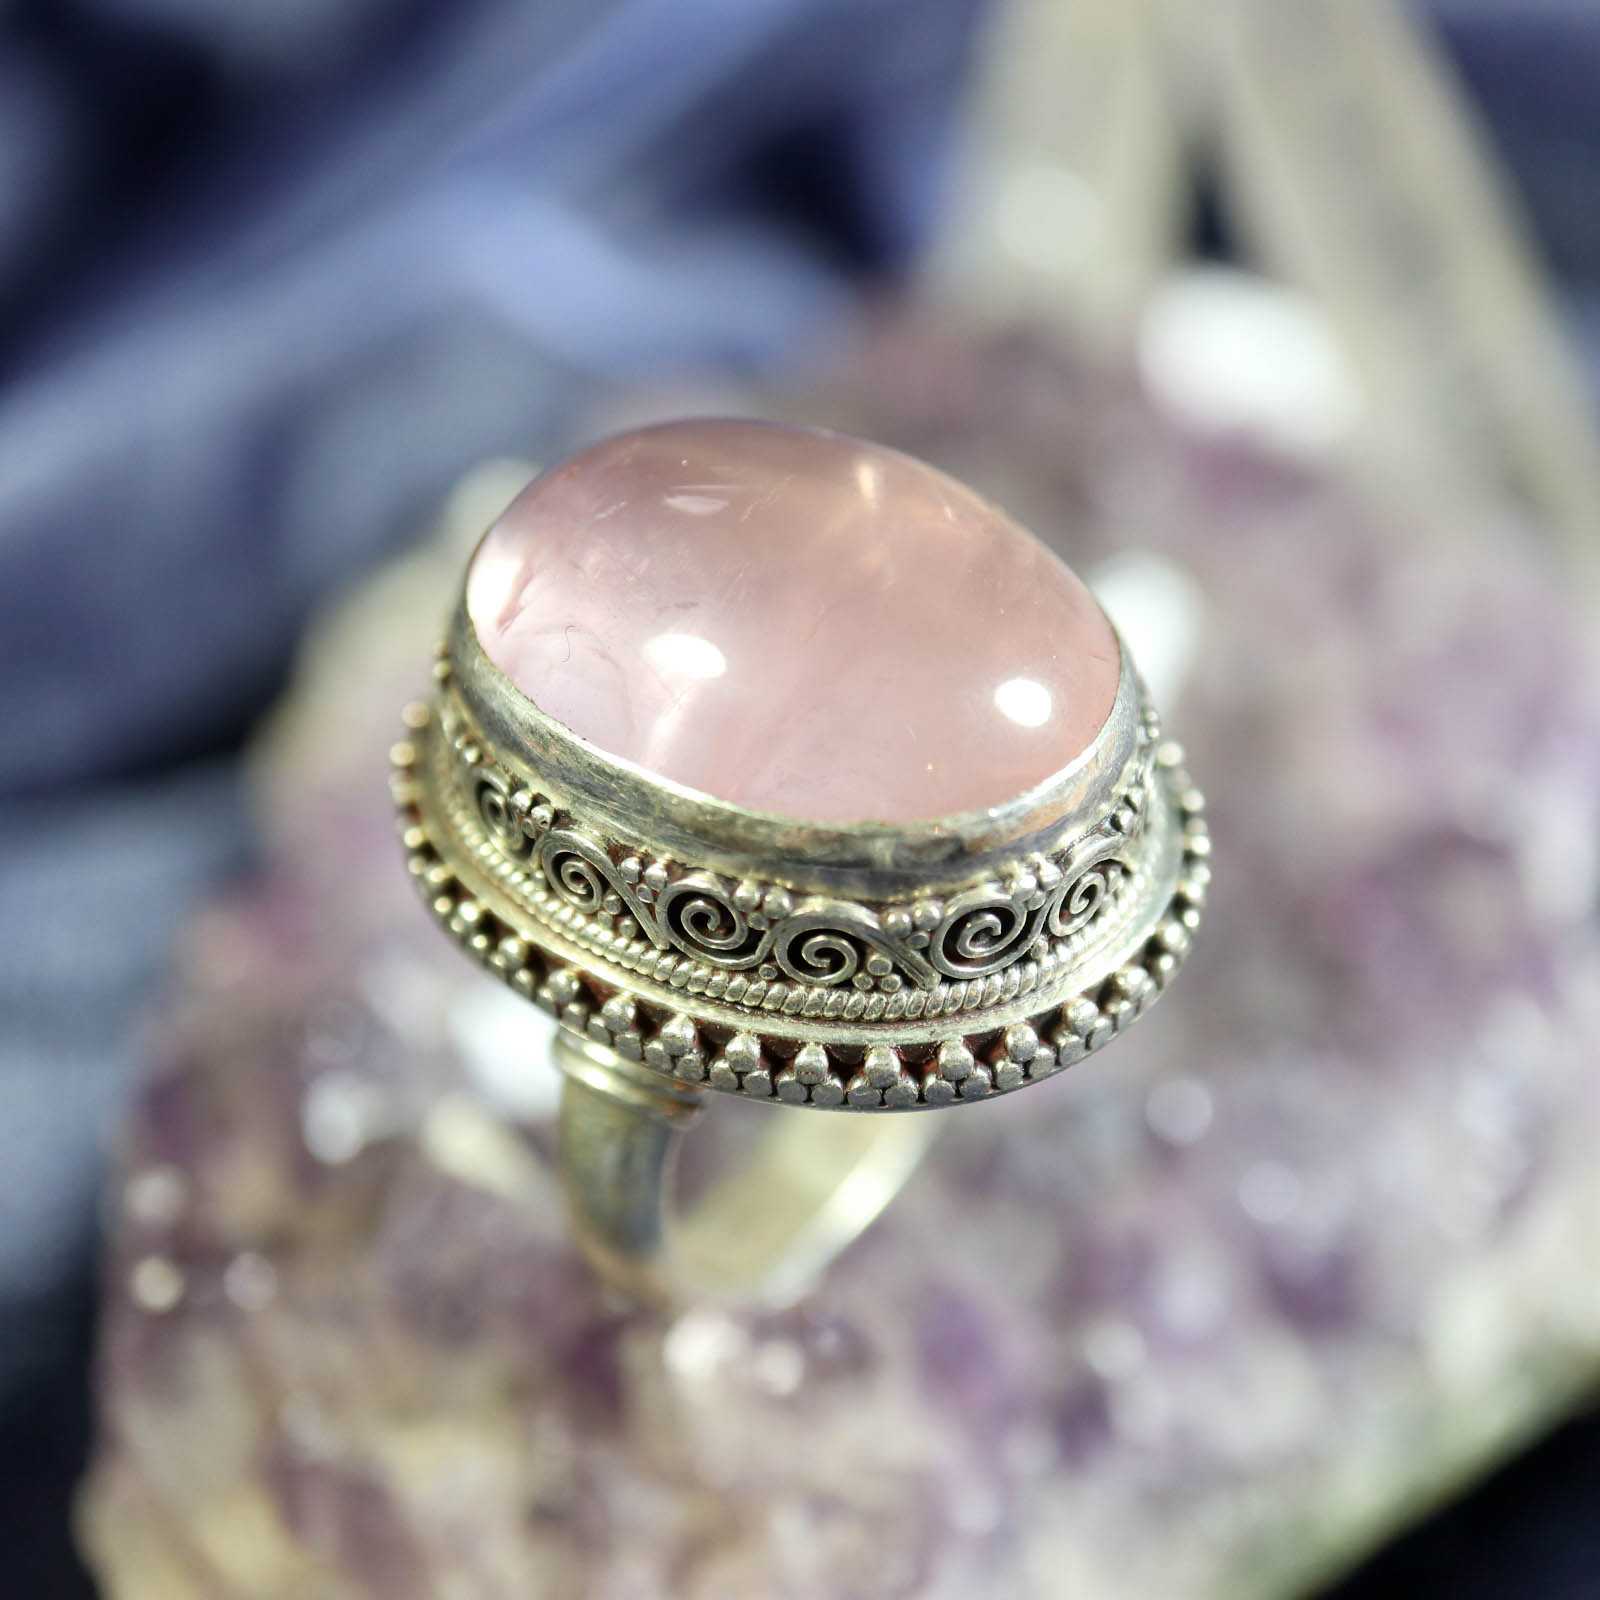 Gypsy Queen Psychic Fortune Telling Ring of Past, Present & Future Visions! ESP - $299.99